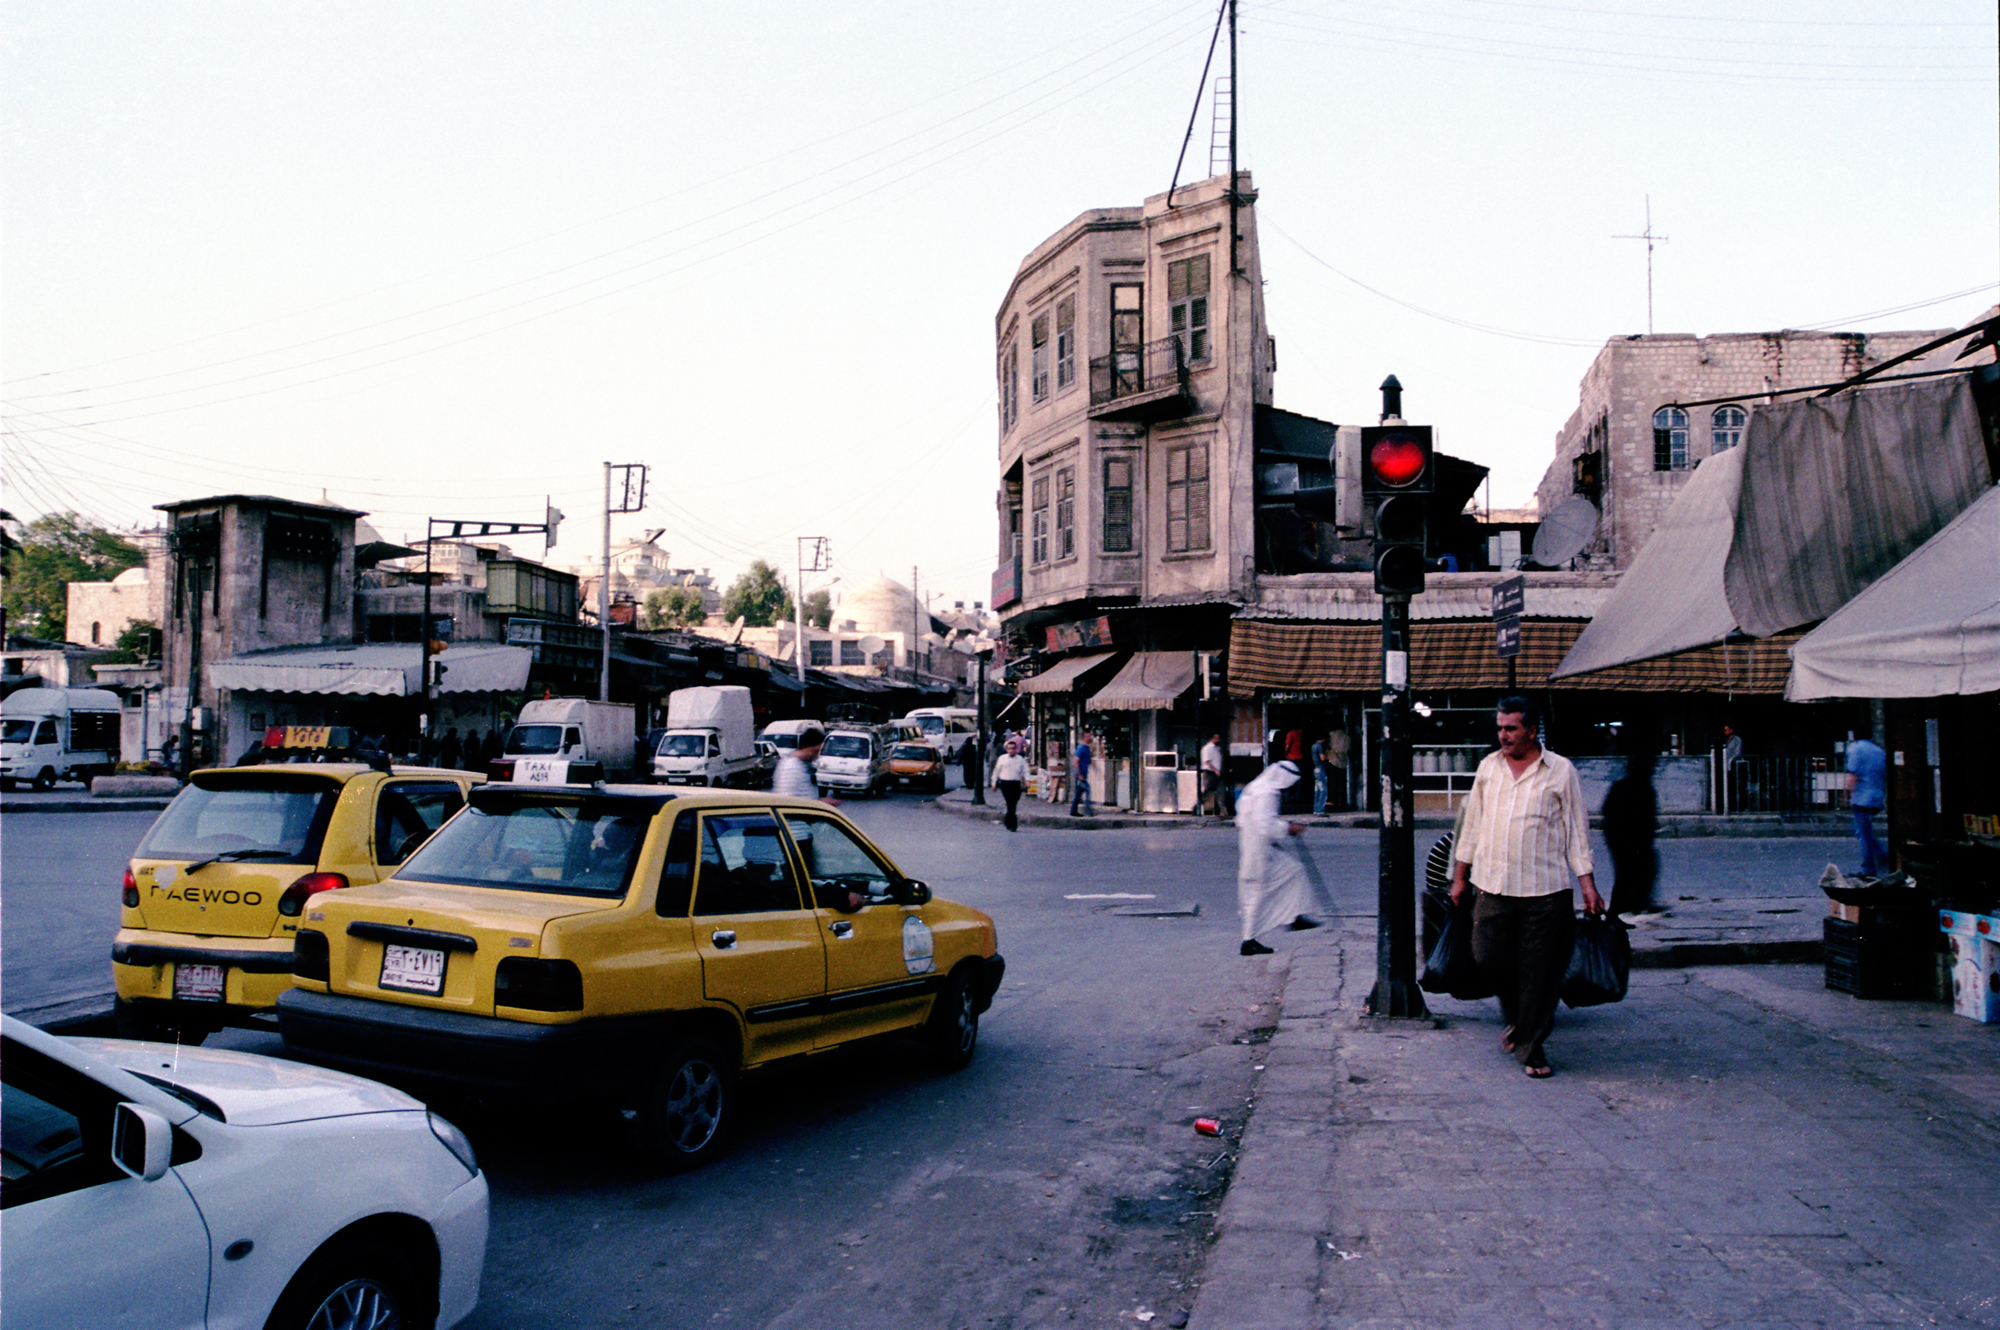 Taxis in Bab al-Jinan, the city's northwestern gate